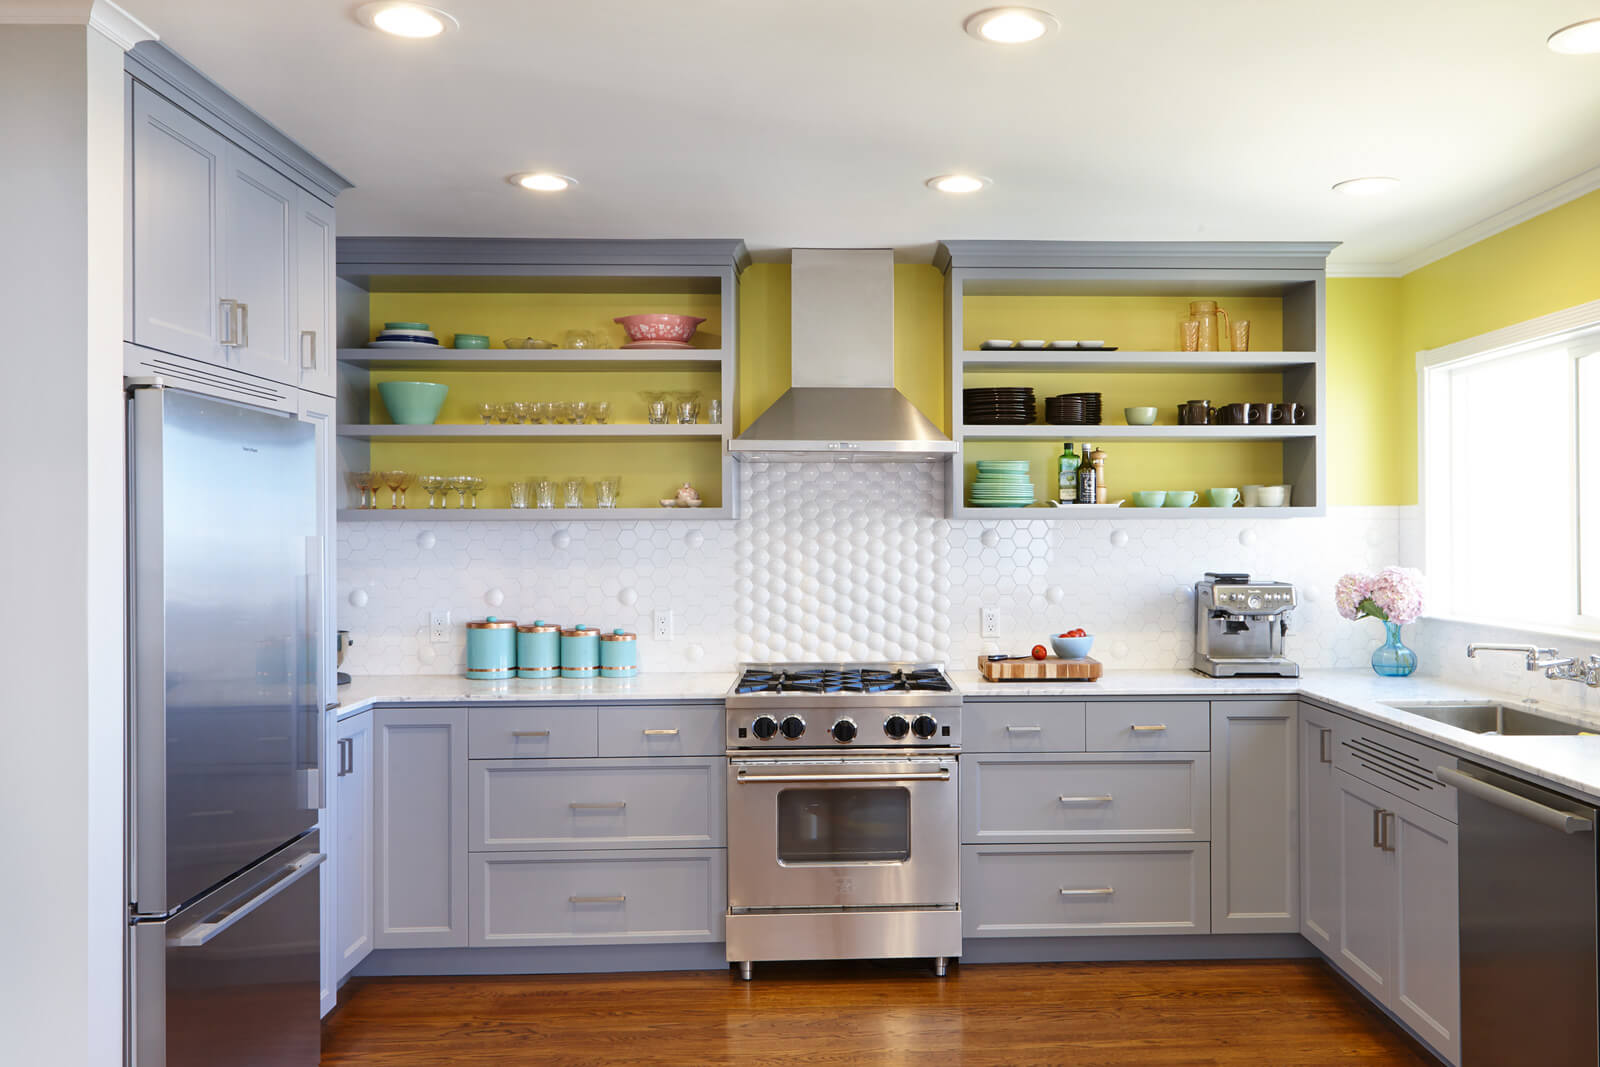 DIY kitchen ideas can really highlight your home